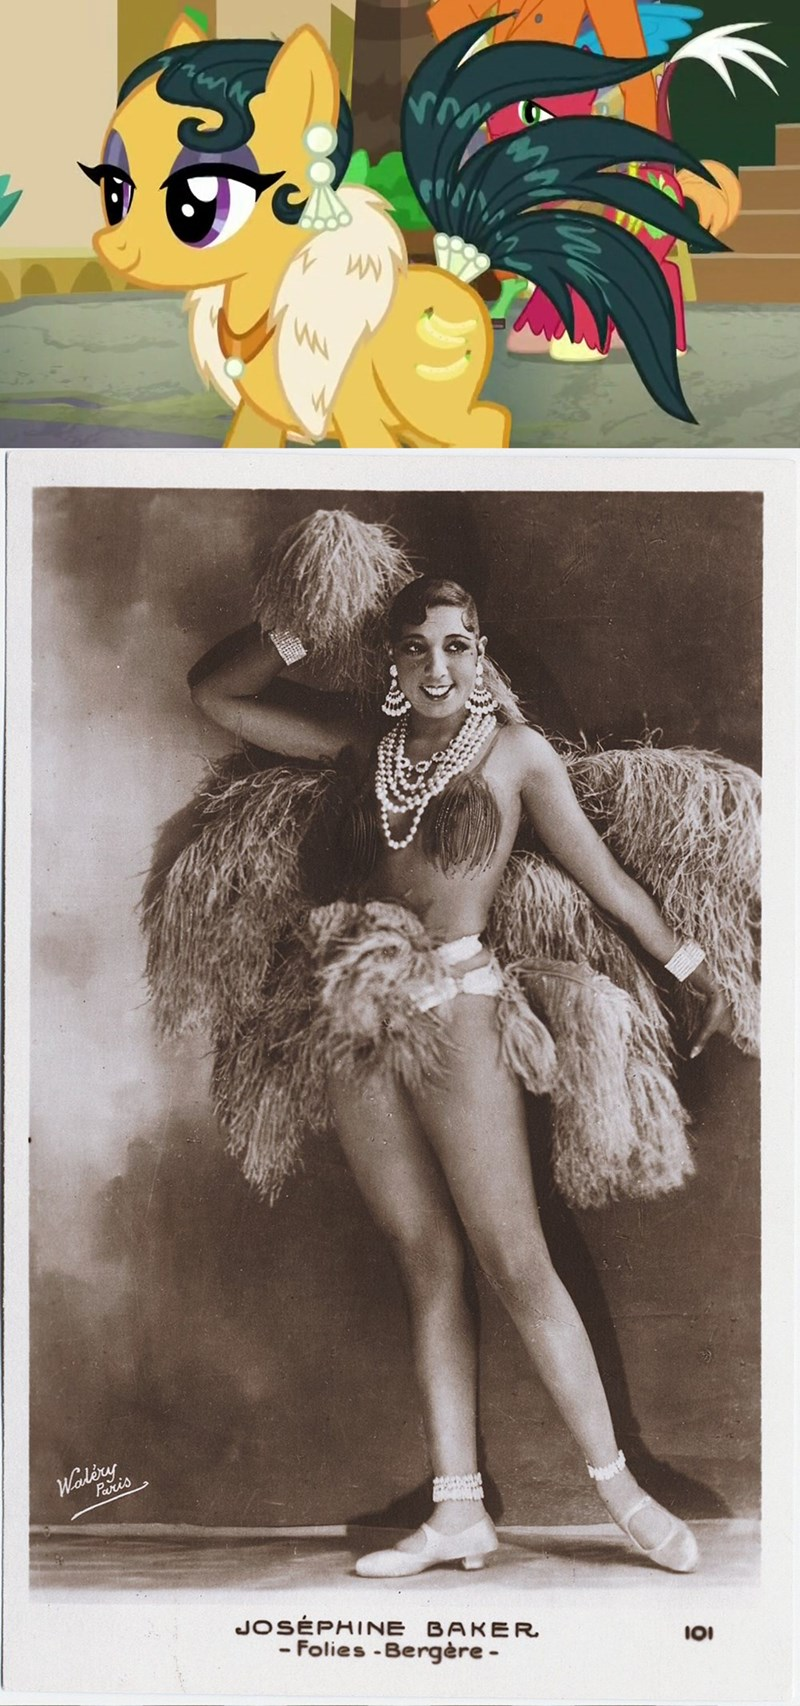 josephine baker dungeons and discords - 8972166400